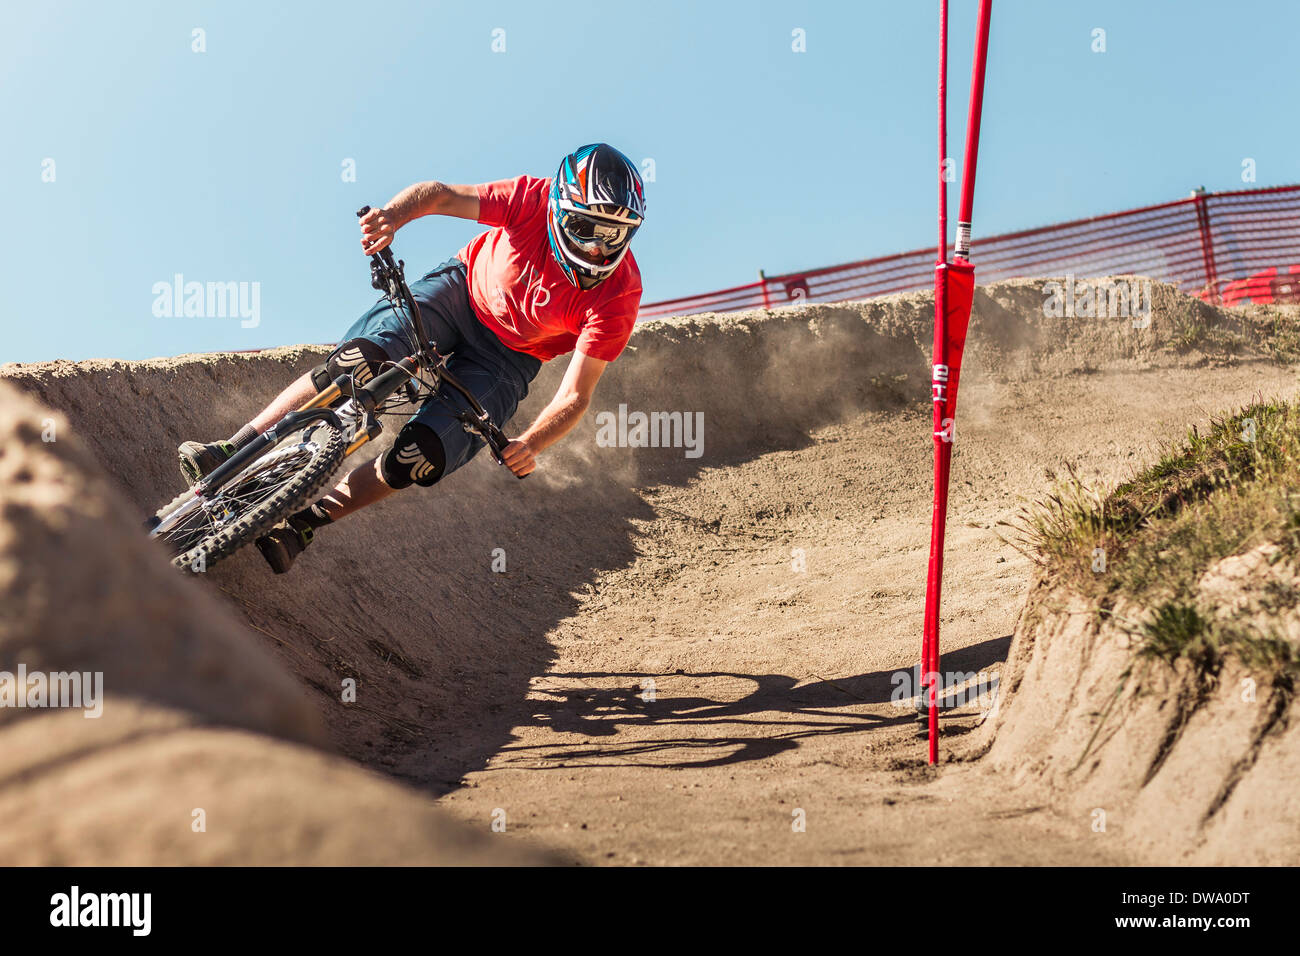 Young male mountainbiker racing in Sea Otter Classic Mountainbike Festival on Laguna Seca Raceway near Monterey - Stock Image